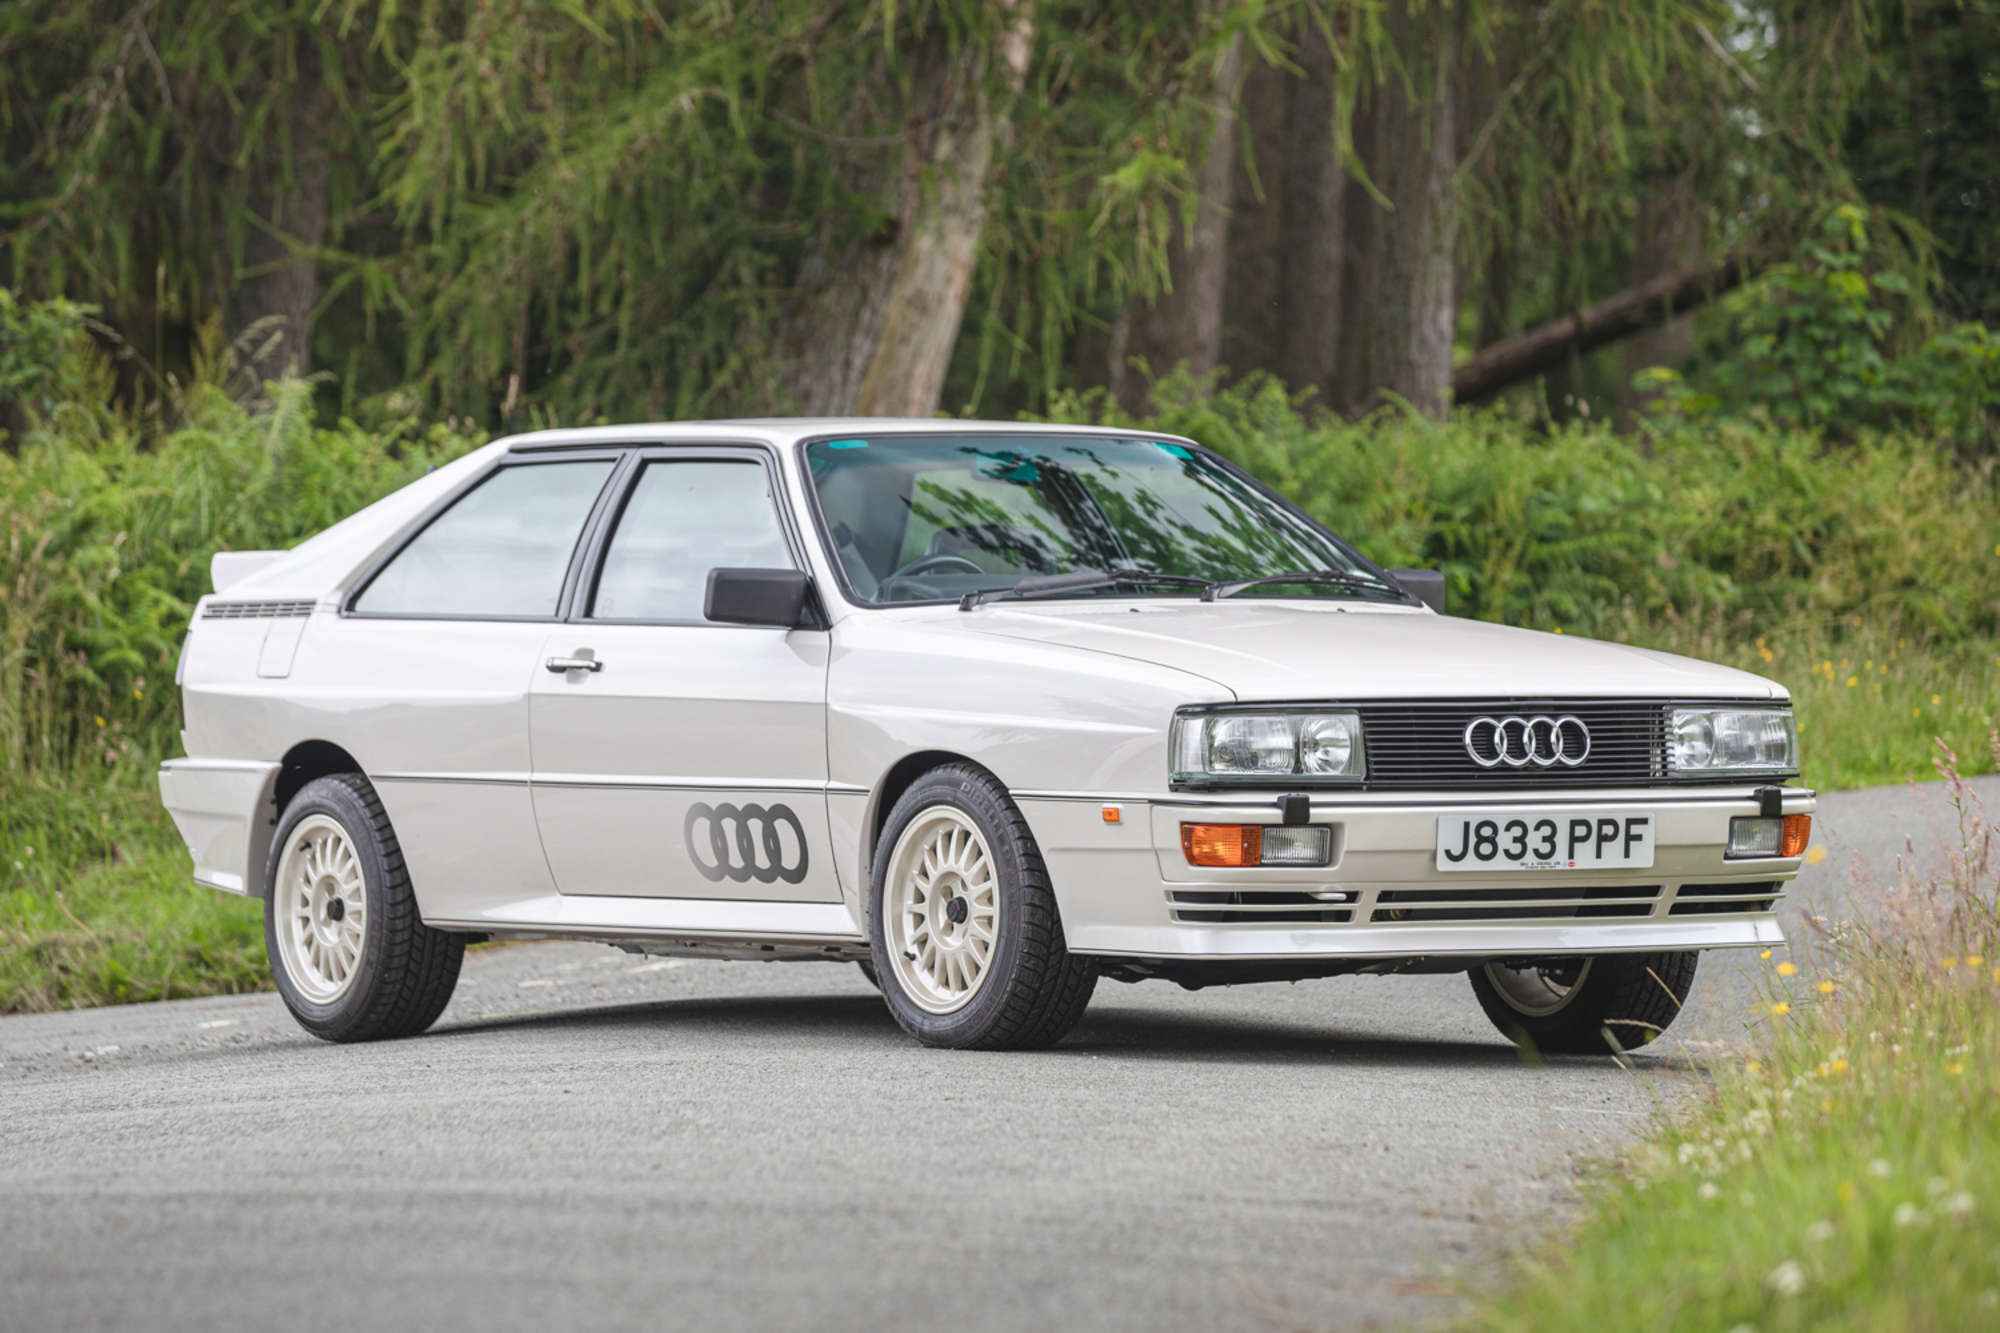 The Audi Quattro may be about to cross a major line in the sand